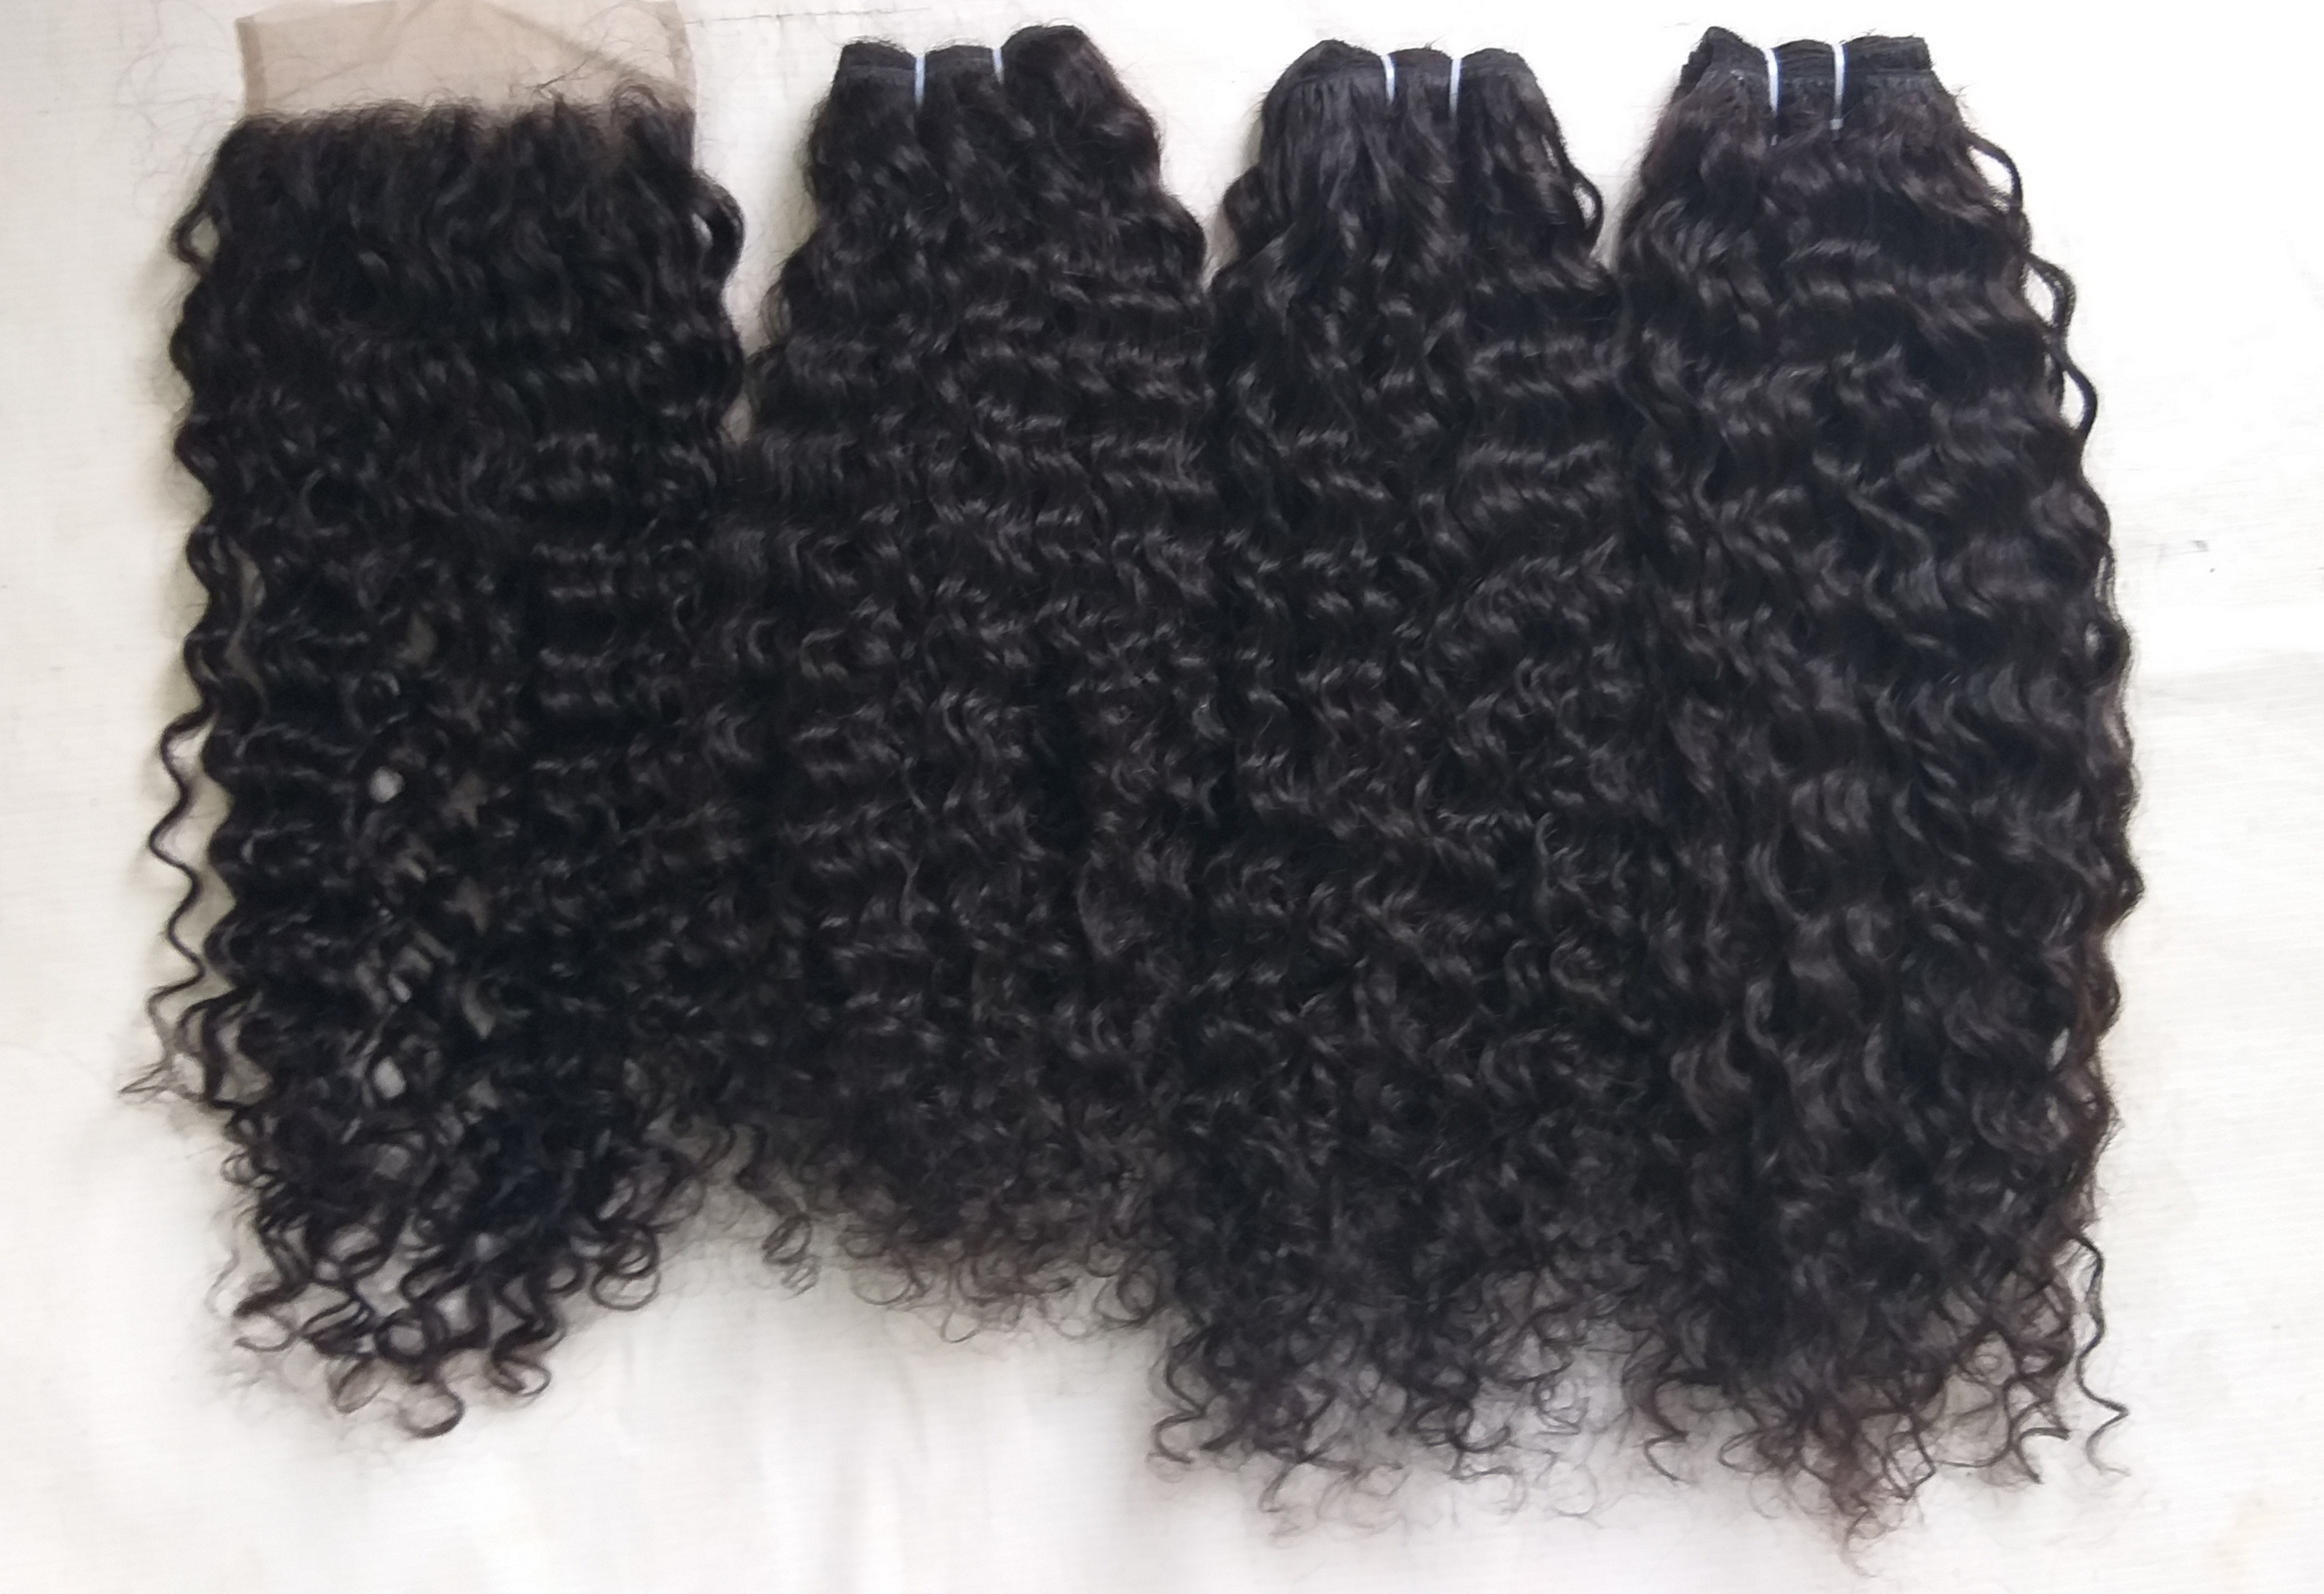 Peruvian steam curly hair, cuticle aligned single donor hair